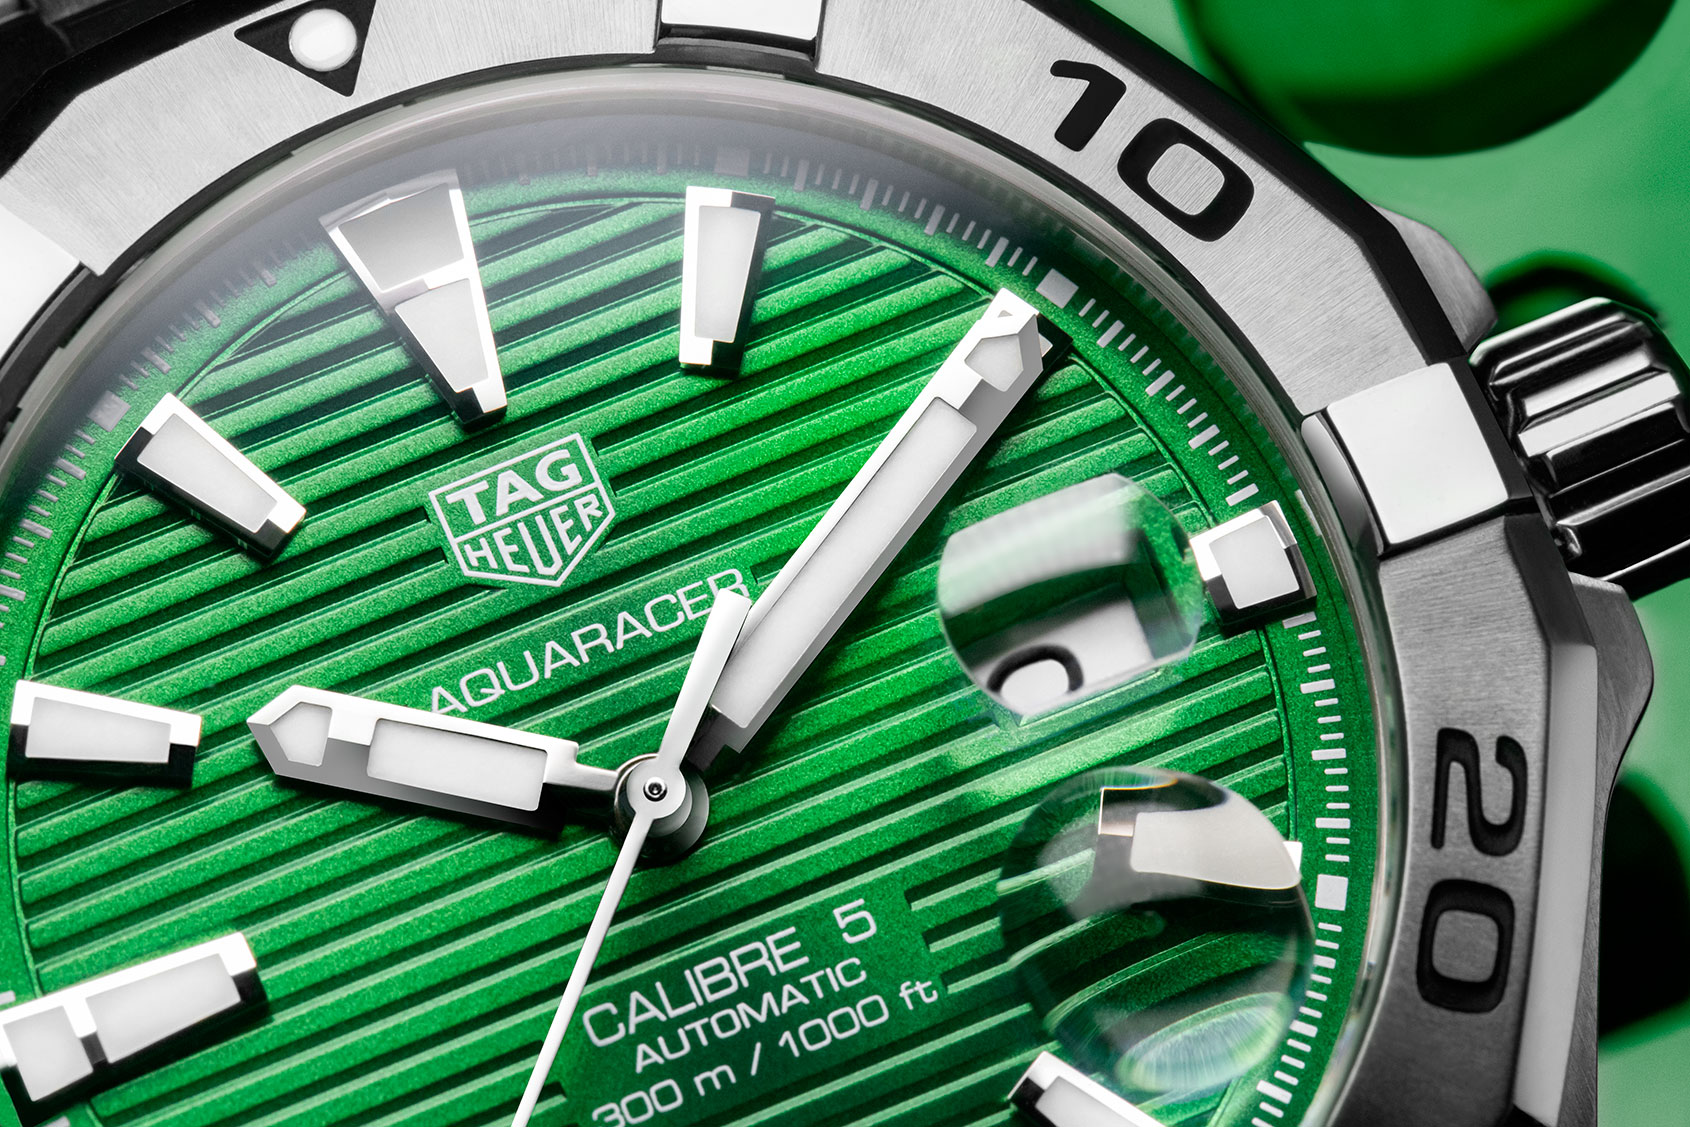 INTRODUCING: The emerald beauty of the TAG Heuer Aquaracer with green dial